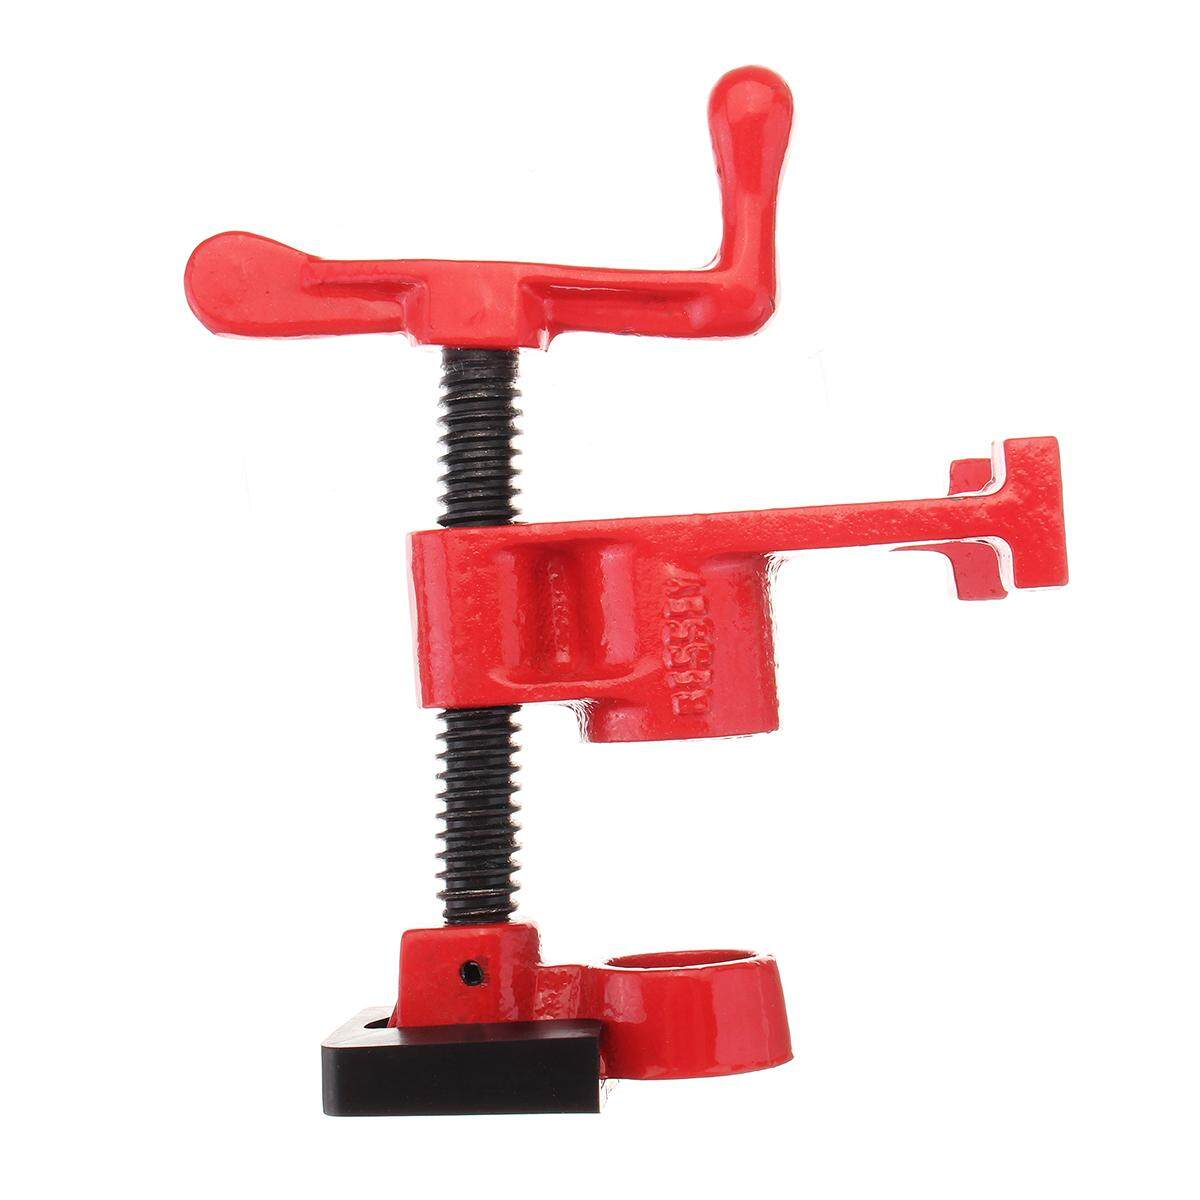 1/2 Heavy Duty Gluing Pipe Clamp Woodworking Vice Hand Tools Cast Iron